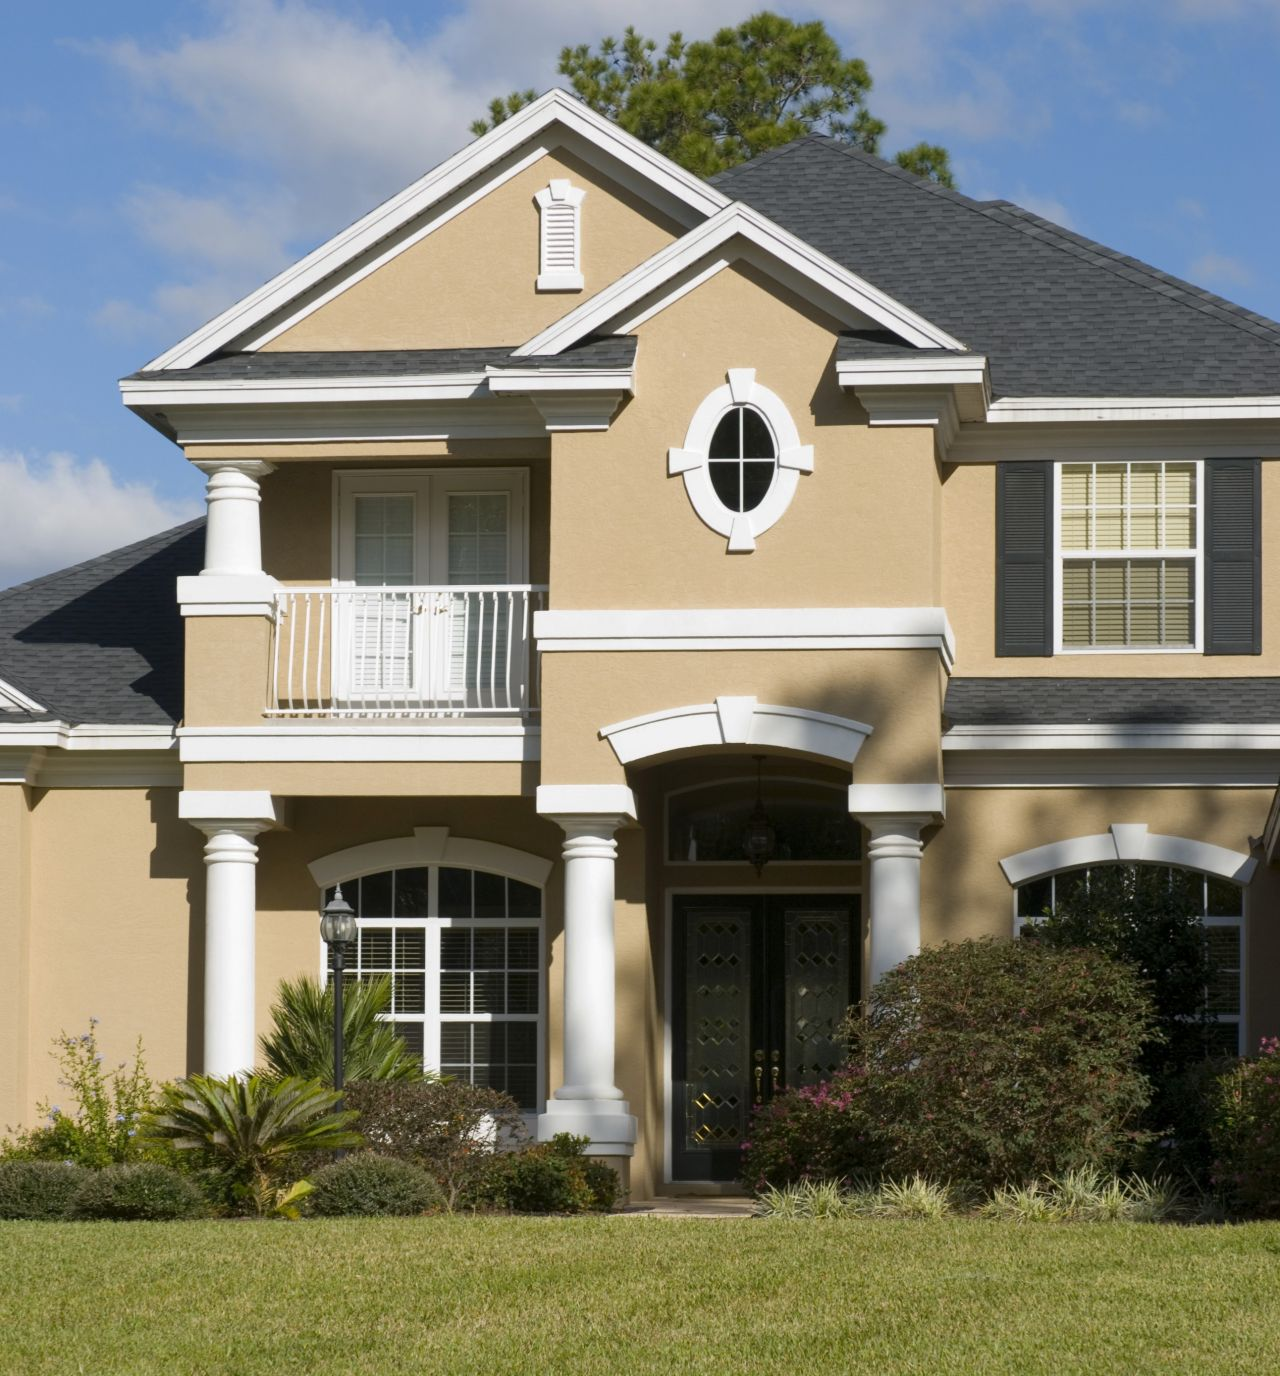 Exterior Paint Schemes And Consider Your Surroundings ... on House Painting Ideas  id=81306